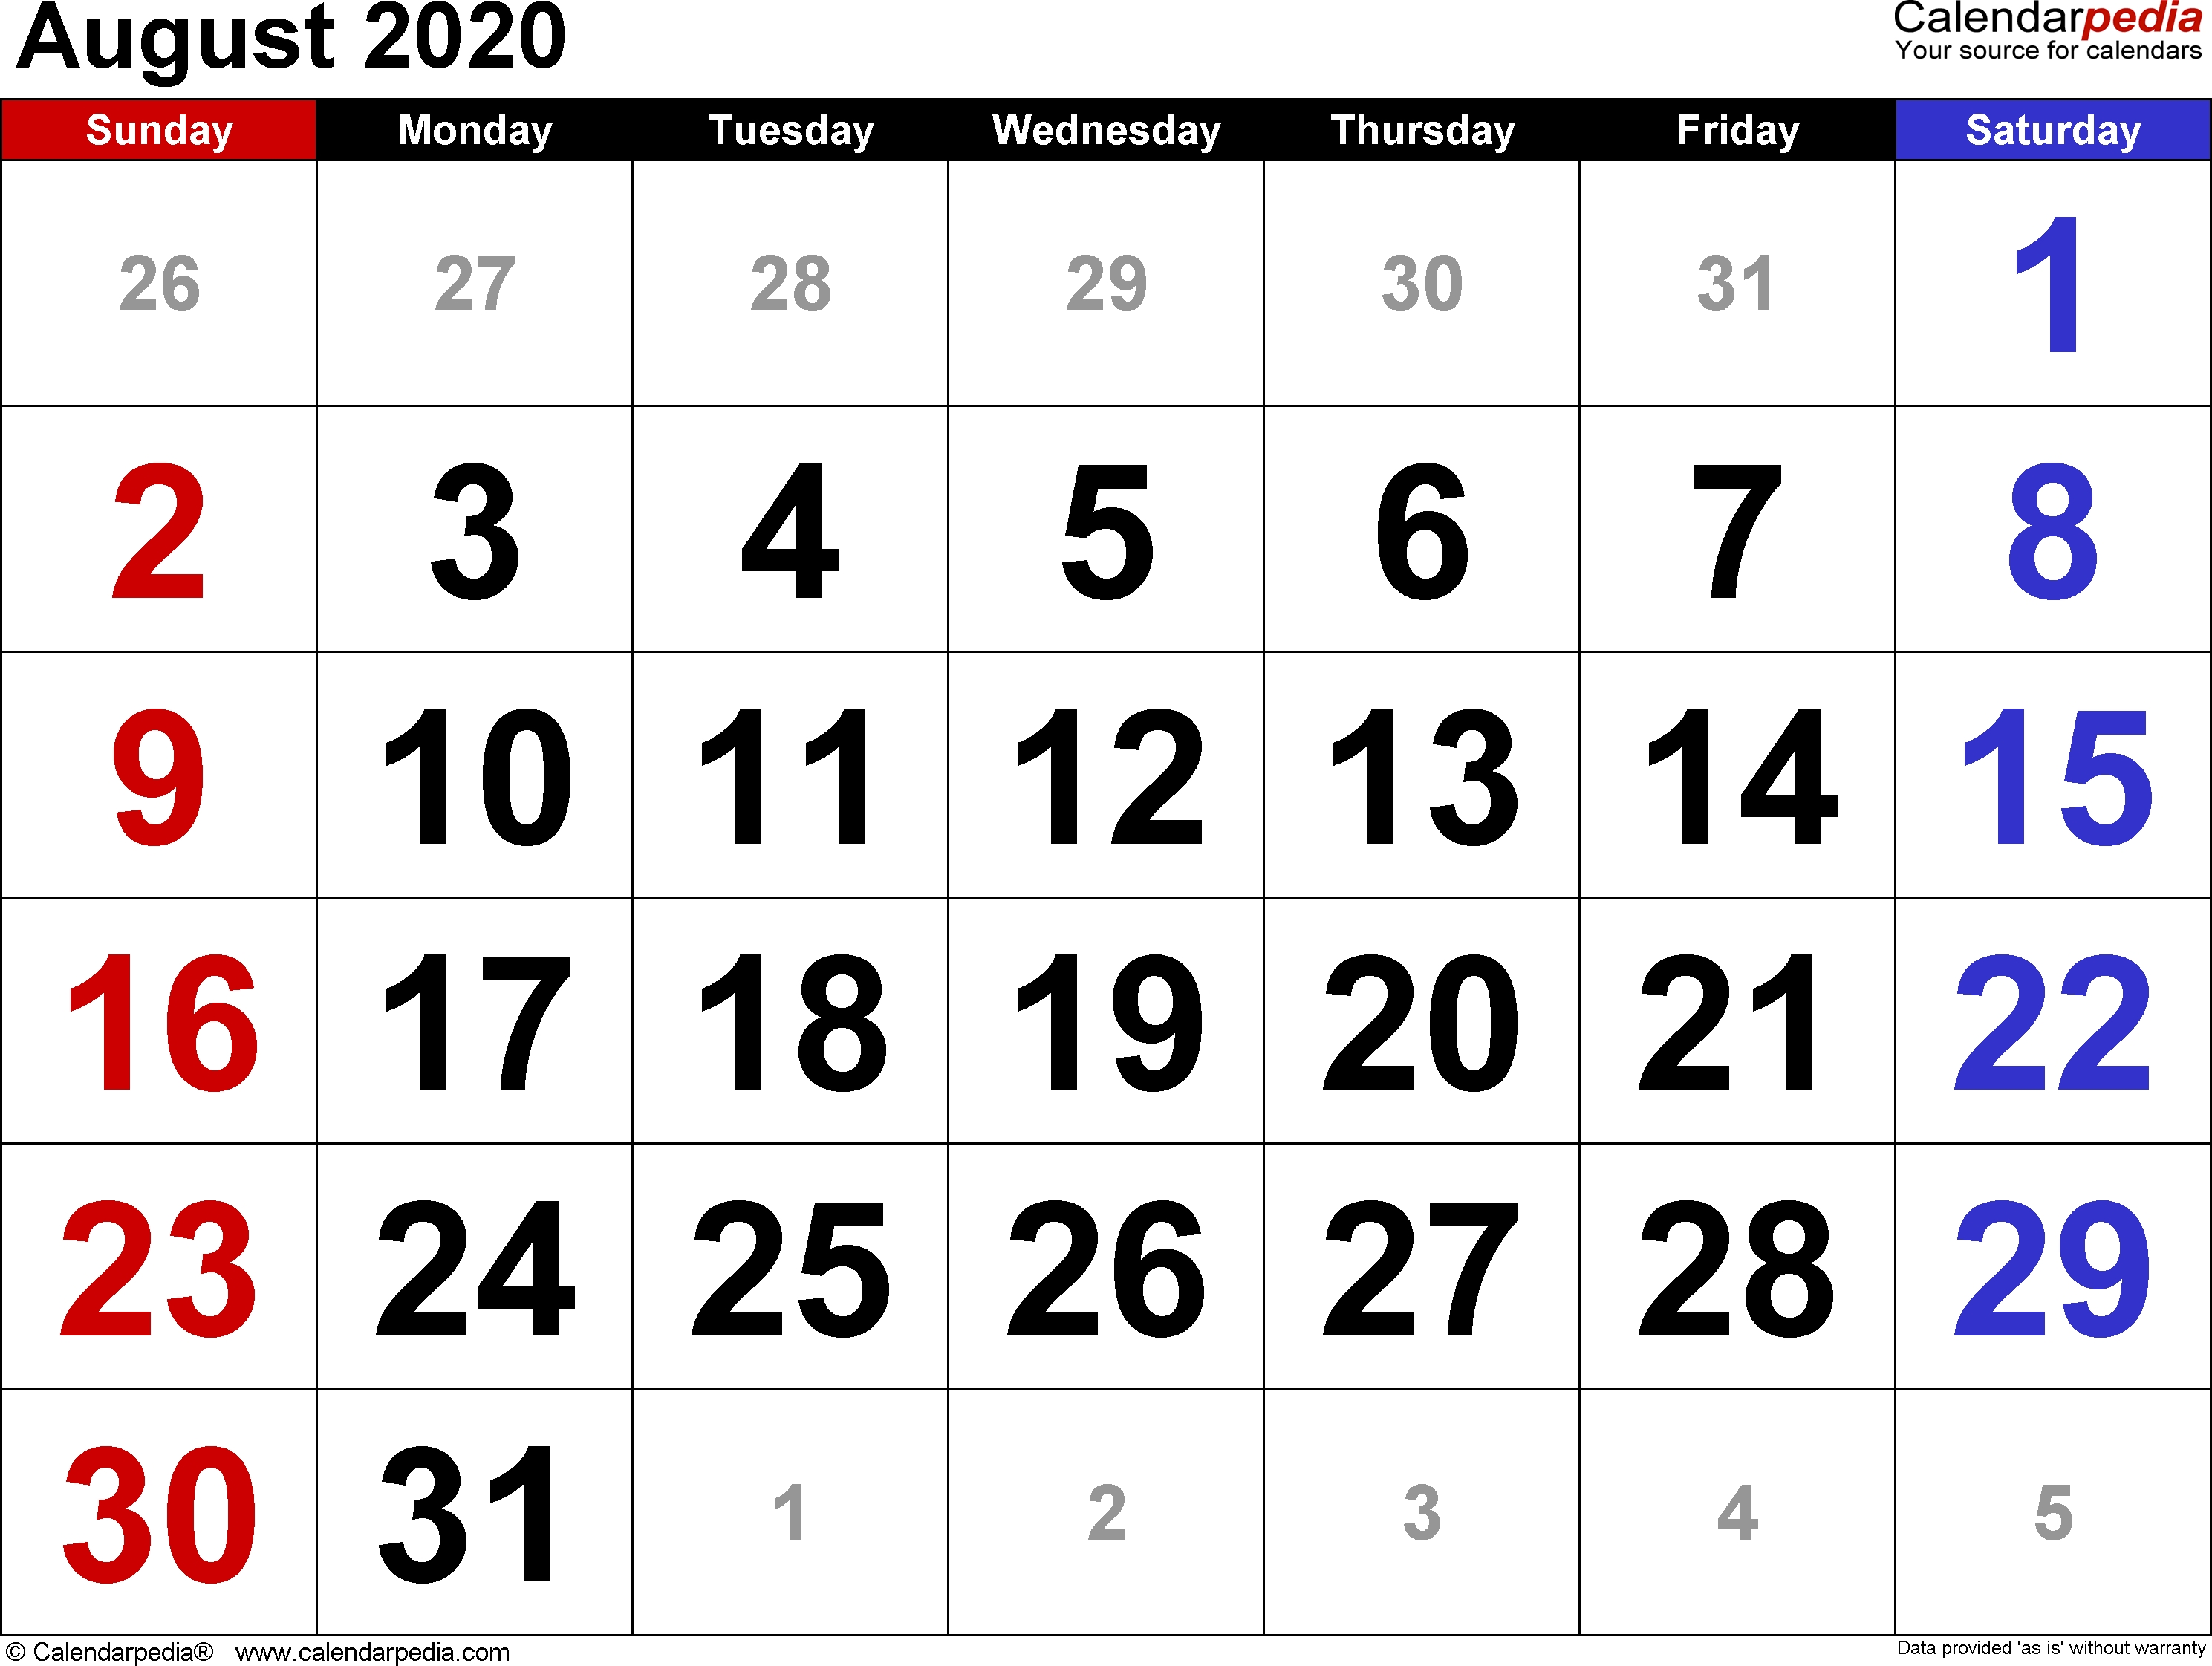 August 2020 Calendars For Word, Excel & Pdf  Calendar 2020 August To December Template